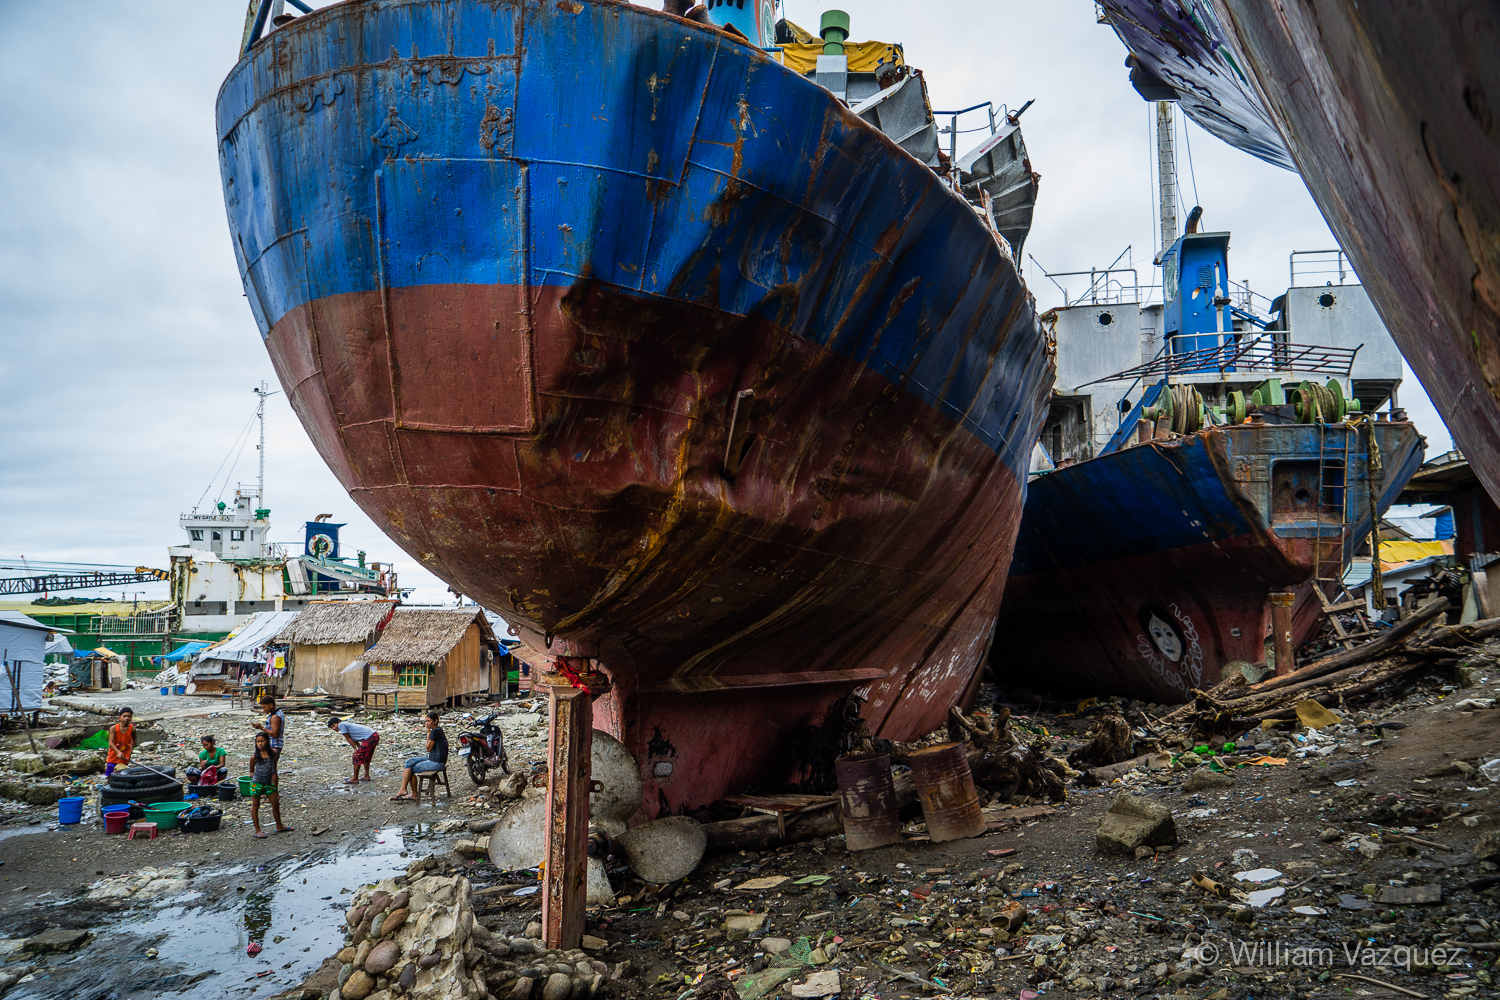 Fishing boats washed ashore in Tacloban, Philippines.